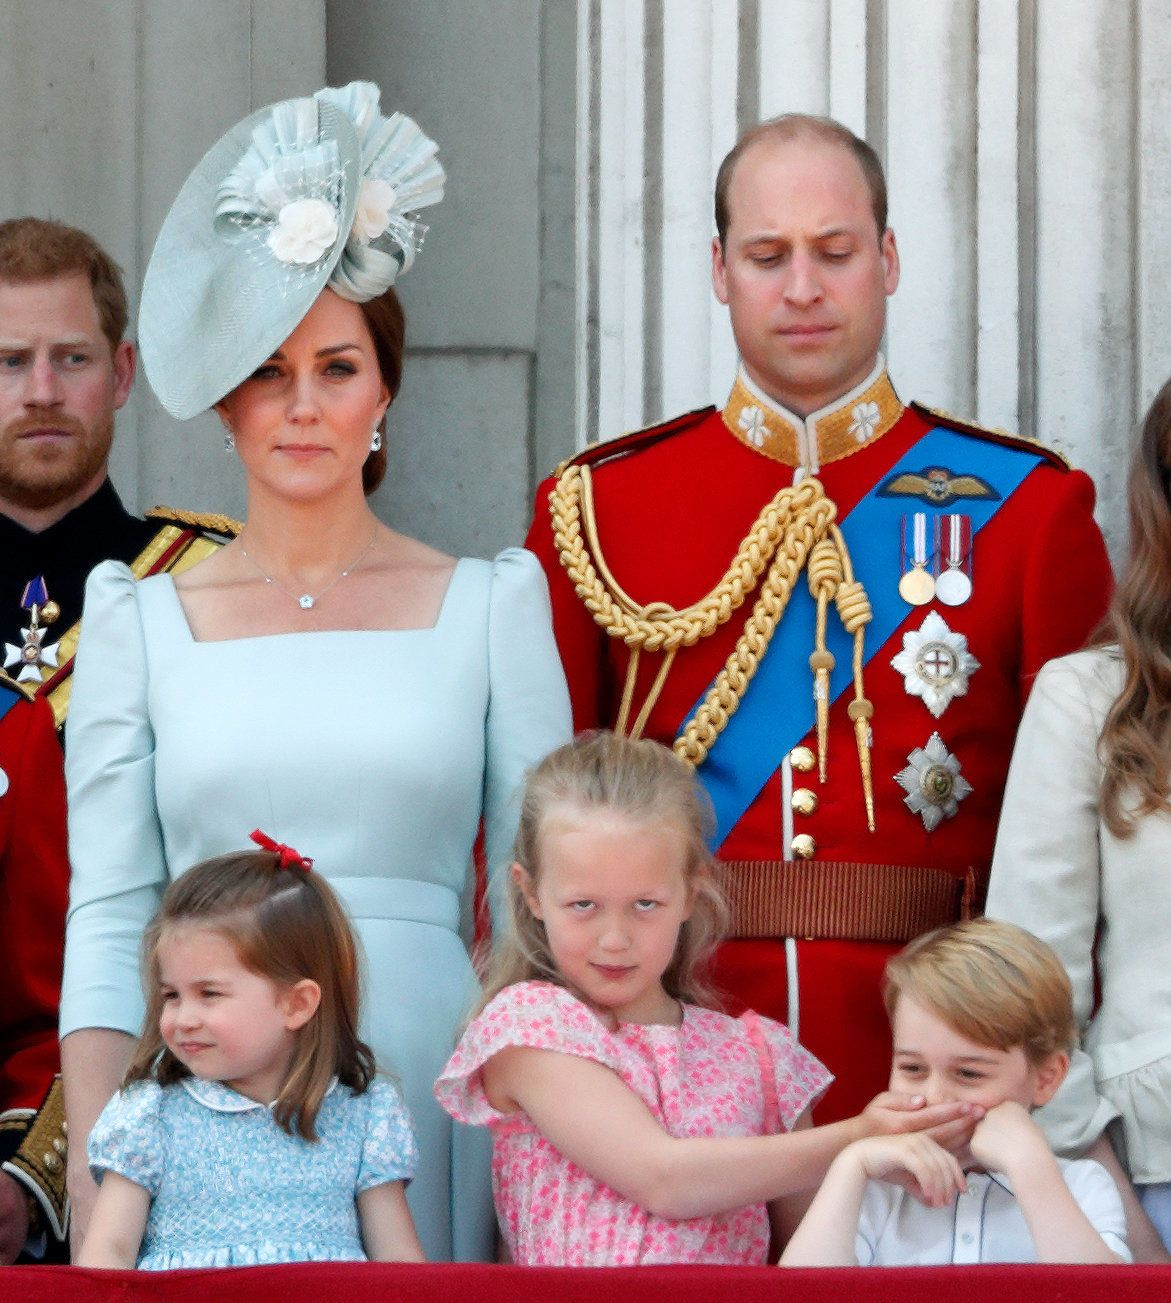 LONDON, UNITED KINGDOM - JUNE 09: (EMBARGOED FOR PUBLICATION IN UK NEWSPAPERS UNTIL 24 HOURS AFTER CREATE DATE AND TIME) Catherine, Duchess of Cambridge, Princess Charlotte of Cambridge, Prince William, Duke of Cambridge and Savannah Phillips (with her hand over Prince George of Cambridge's mouth) stand on the balcony of Buckingham Palace during Trooping The Colour 2018 on June 9, 2018 in London, England. The annual ceremony, involving over 1400 guardsmen and cavalry, is believed to have first been performed during the reign of King Charles II. The parade marks the official birthday of the Sovereign, even though the Queen's actual birthday is on April 21st. (Photo by Max Mumby/Indigo/Getty Images)